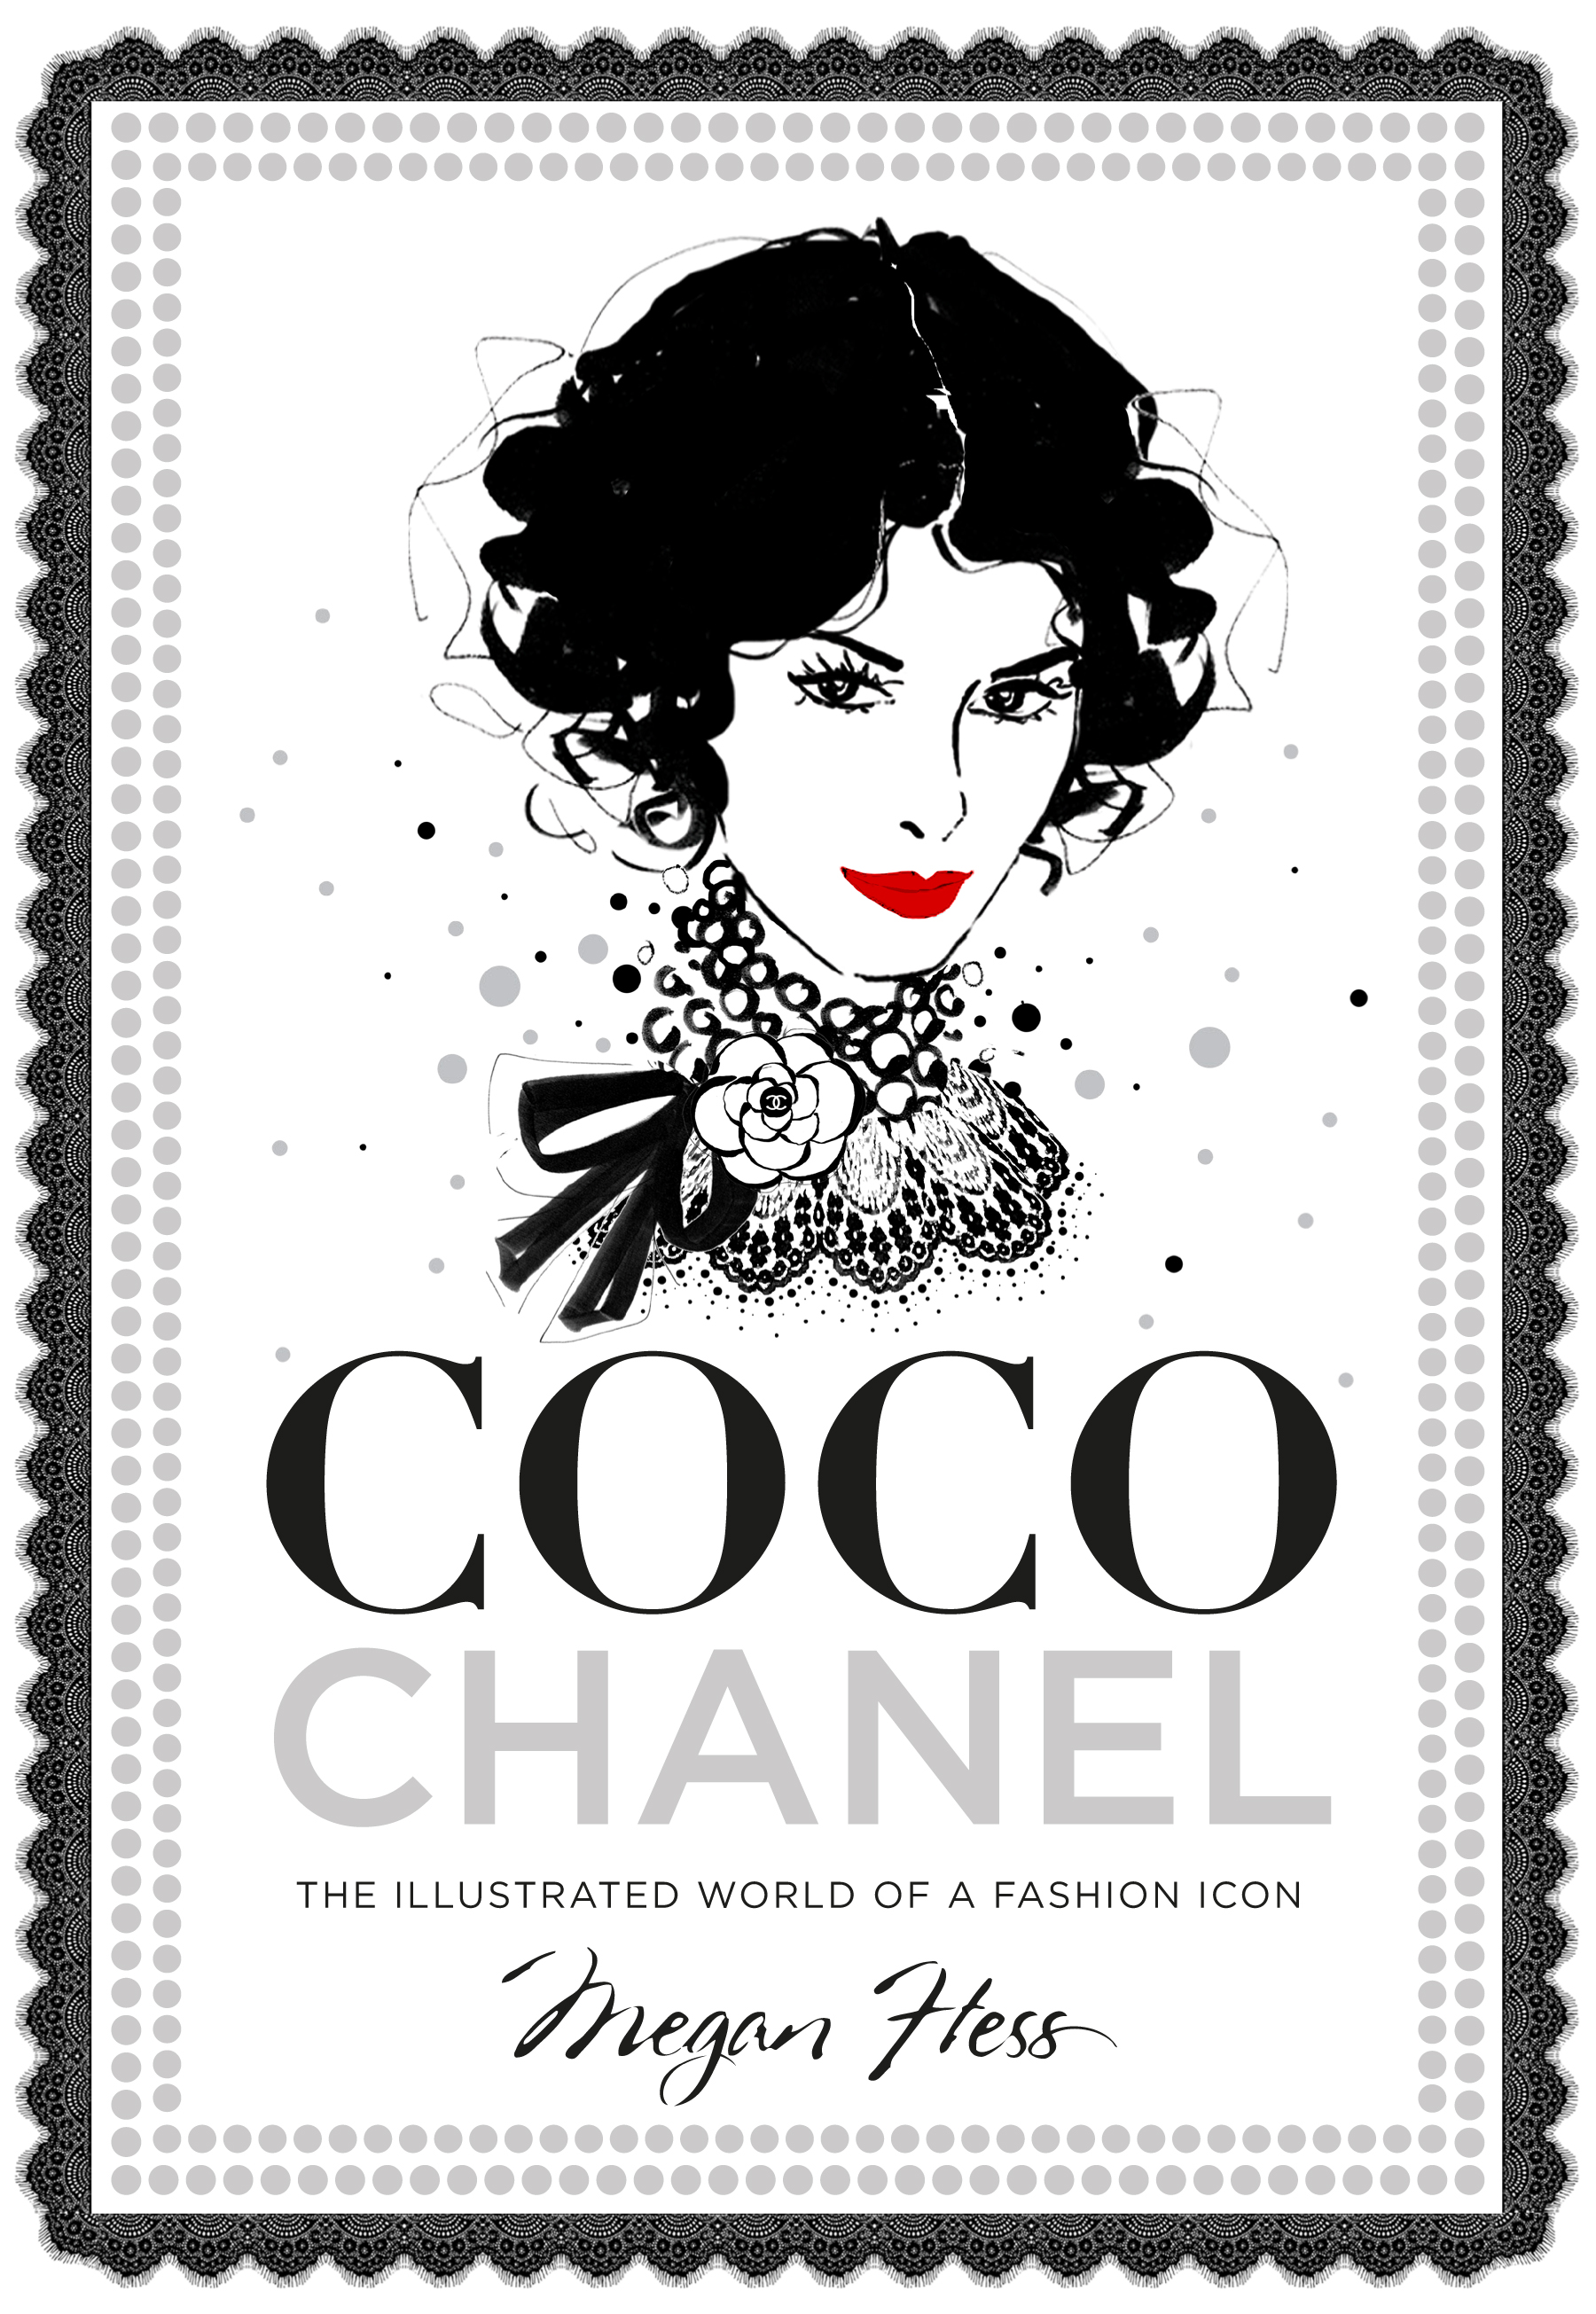 Fashion Book Cover Art ~ Review coco chanel the illustrated world of a fashion